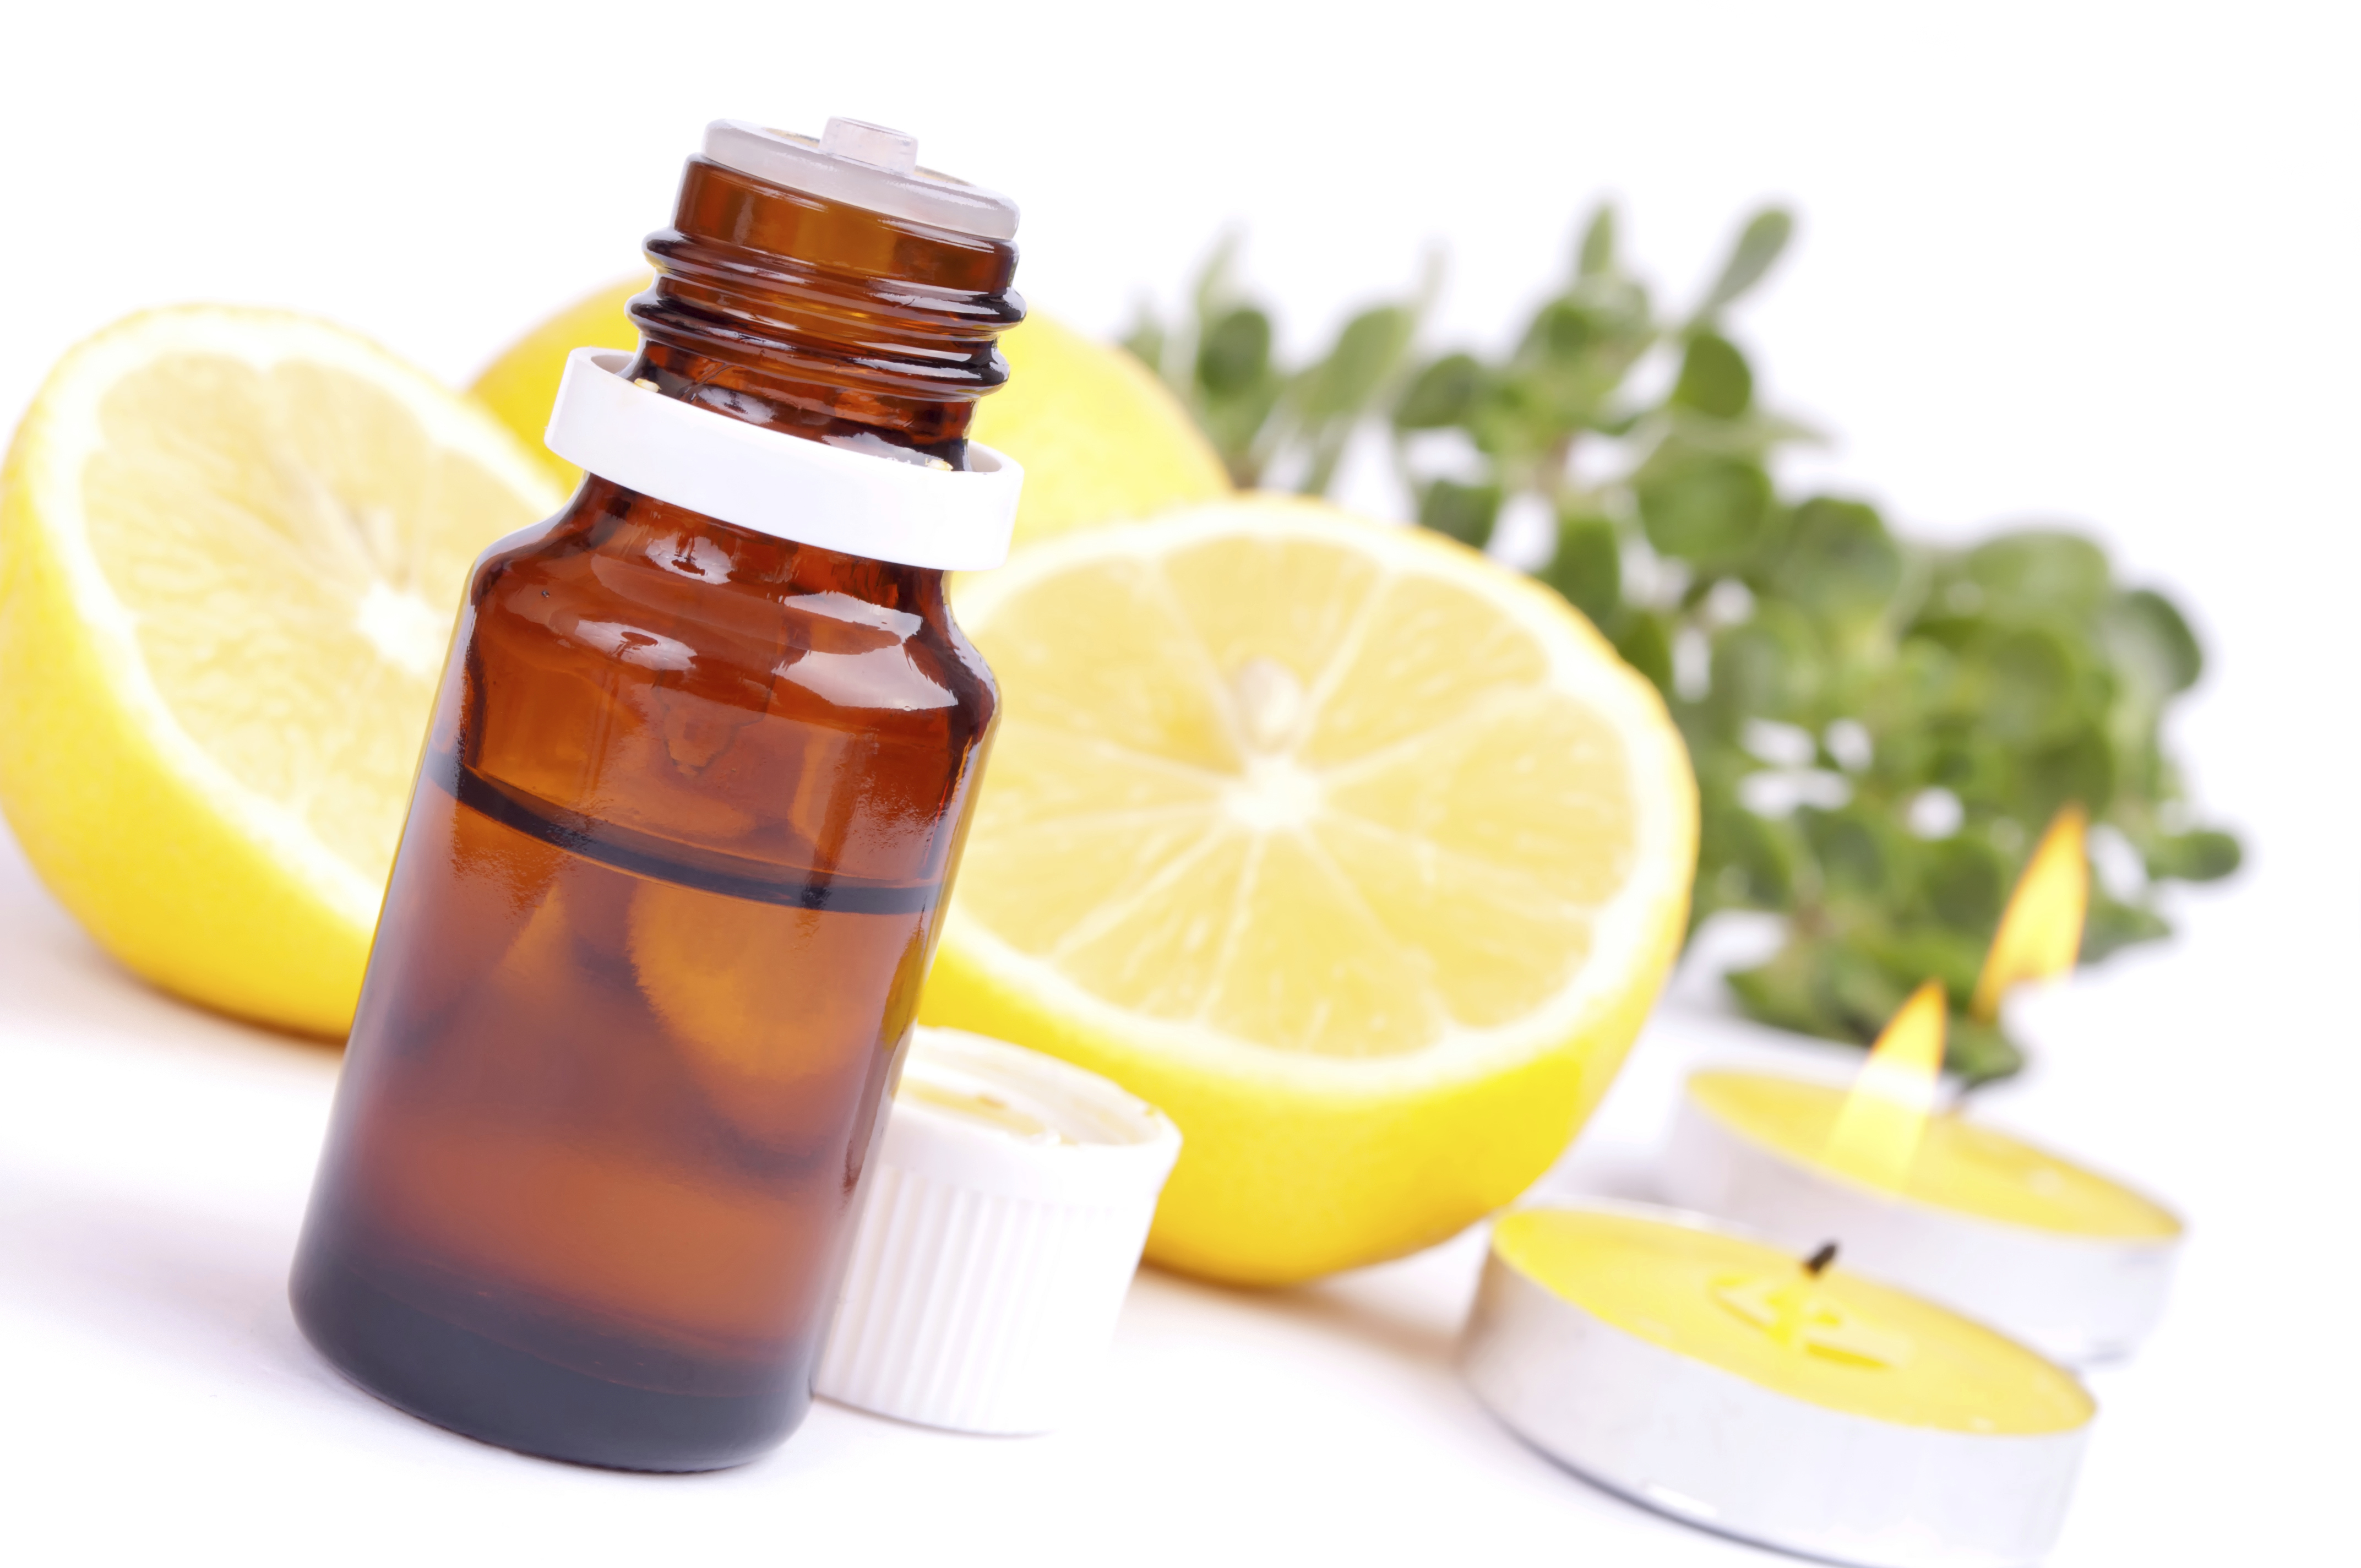 Best quality natural Lemon oil including Reconstitution Lemon Balm, Lemon Oil 10 X, Lemon Oil CP and other fragrance & perfume oils at the most discount rates by BMV Fragrances in UP, India.